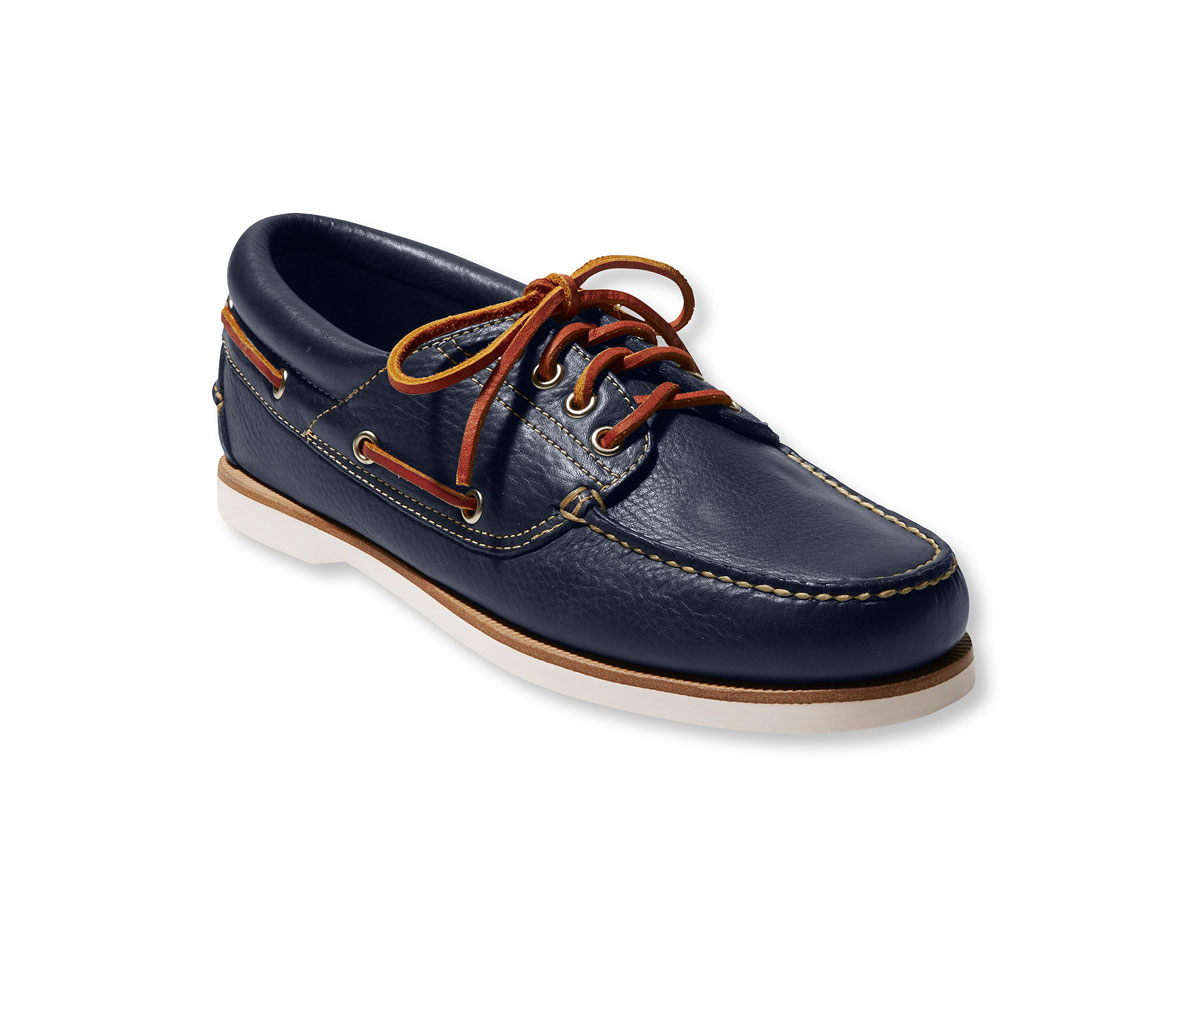 628df584ff31be Our Top 8 Boat Shoe Picks for Spring